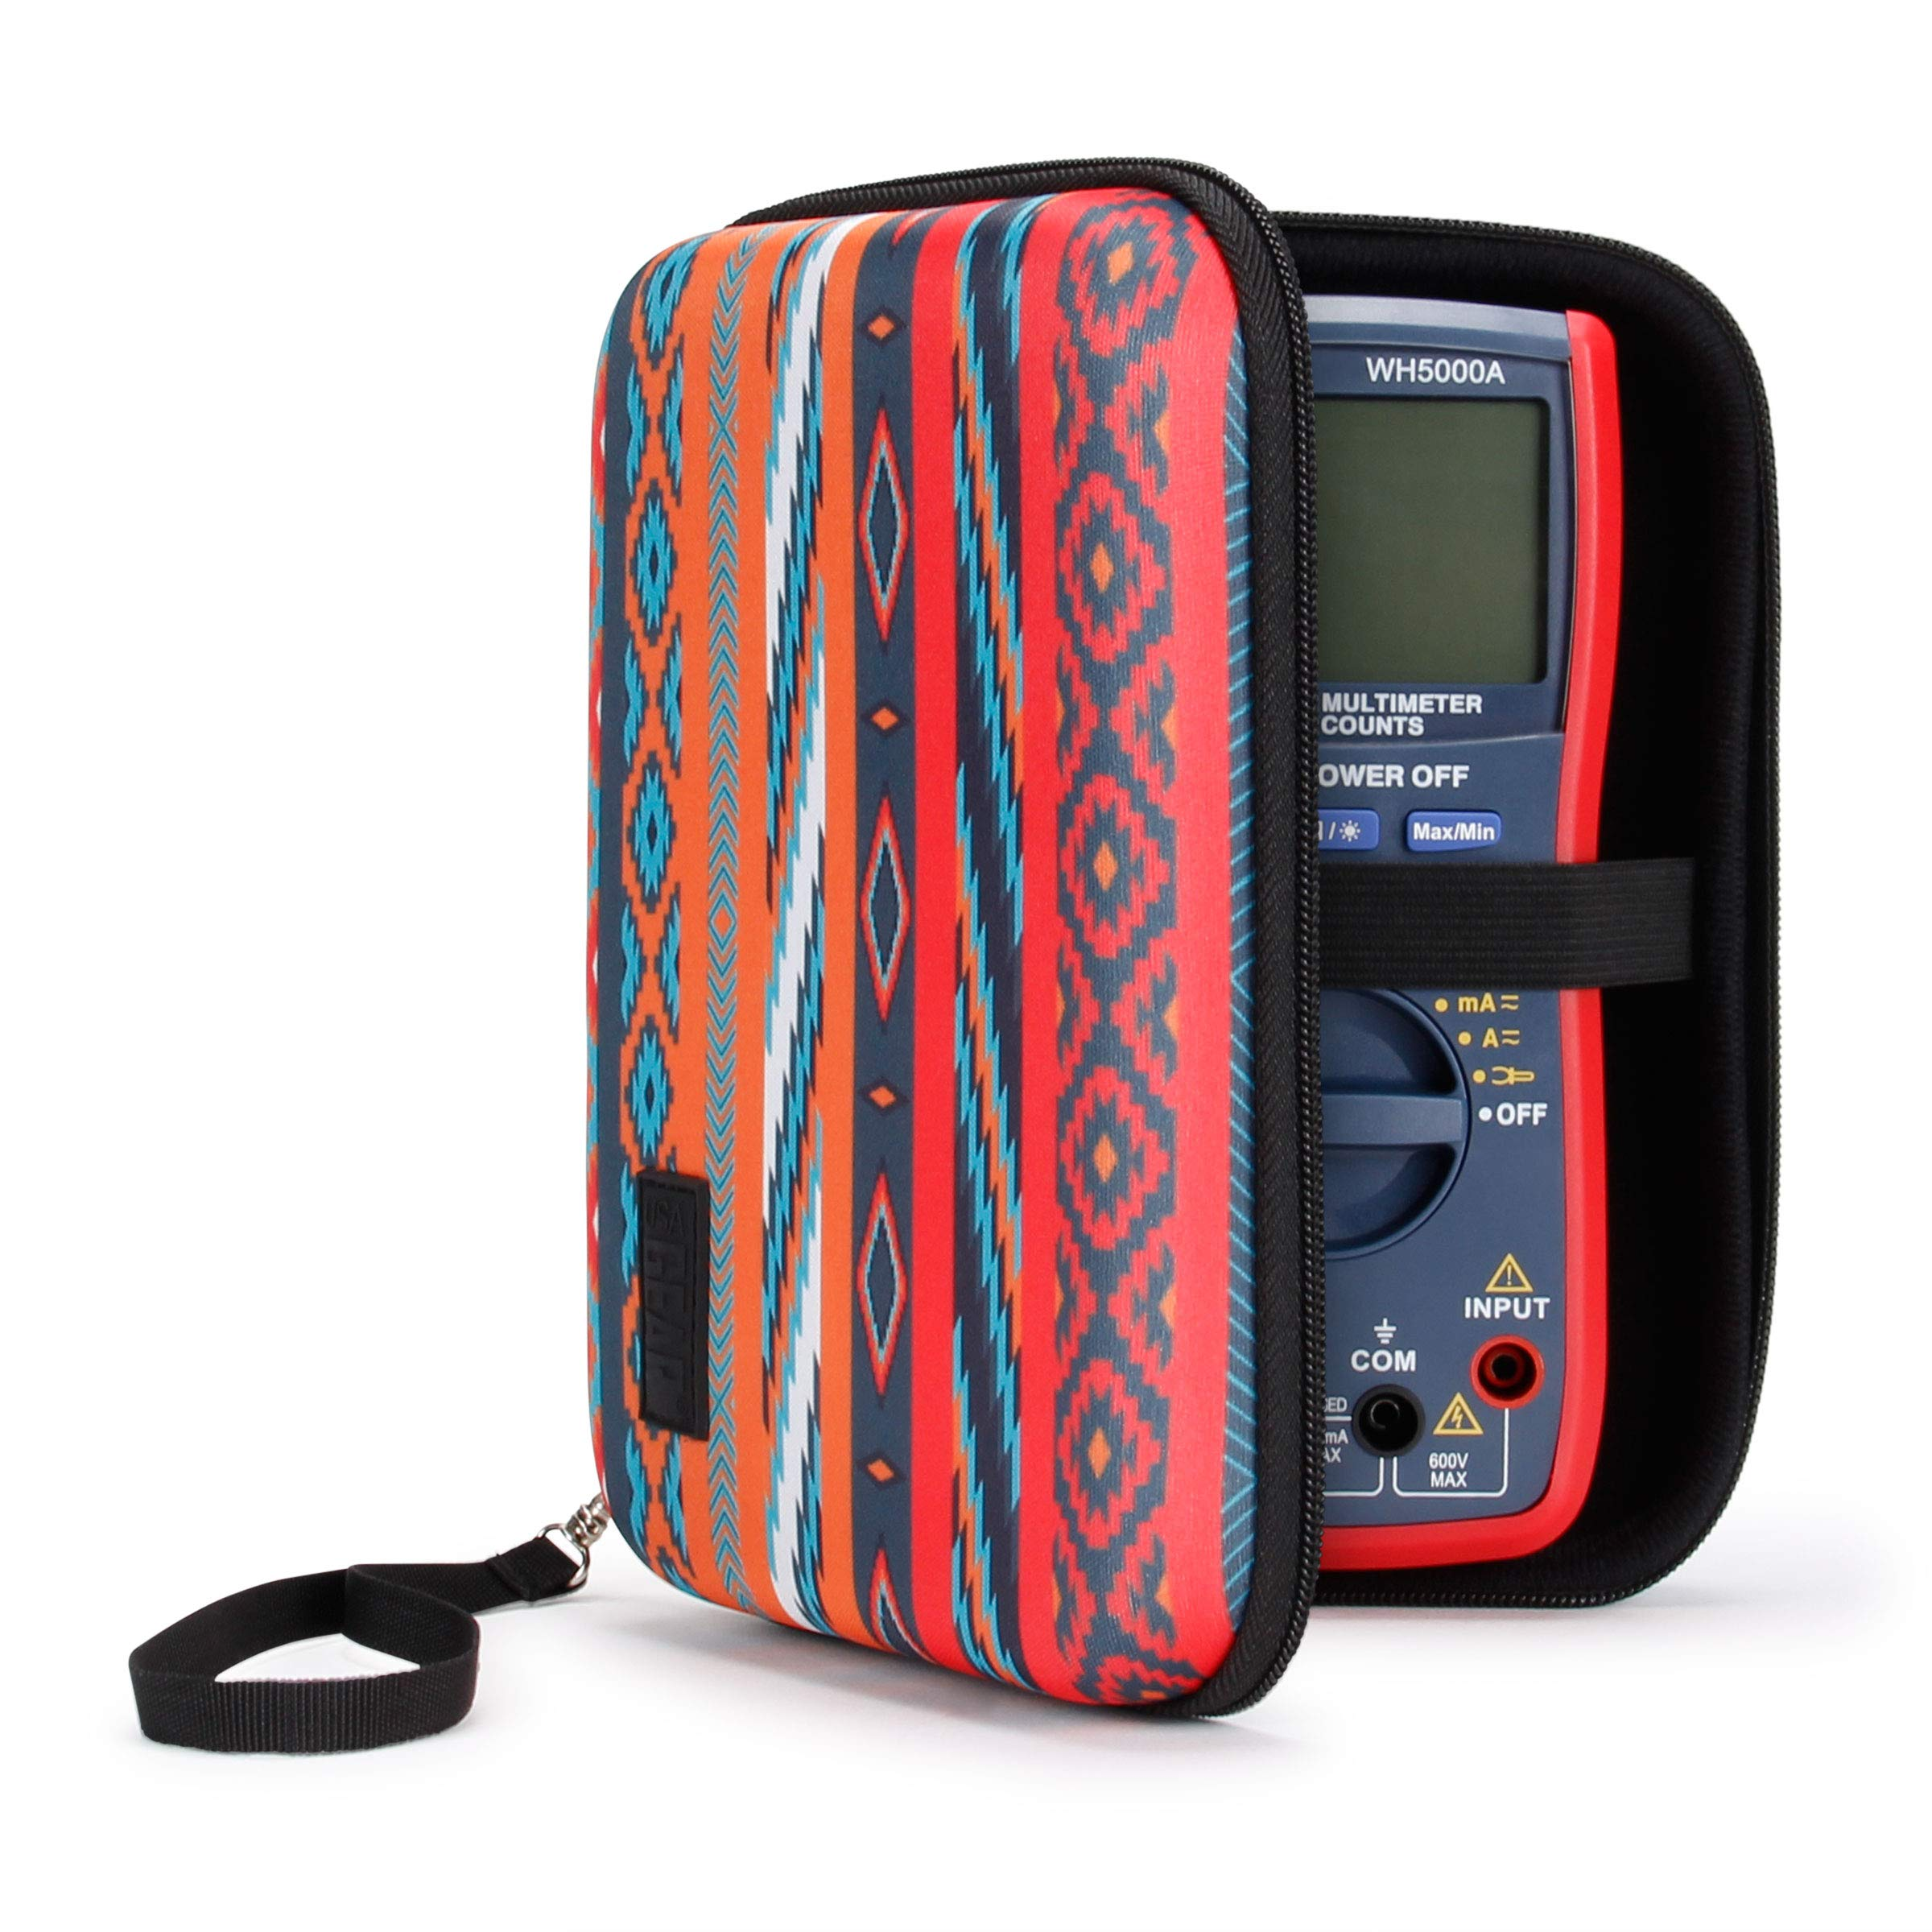 USA Gear Hard Digital Multimeter Carrying Case - Voltage Tester Travel Case, Weather Resistant, Wrist Strap, Storage for Leads and Probes - Compatible with Fluke, AstroAI WH5000A and More - Southwest